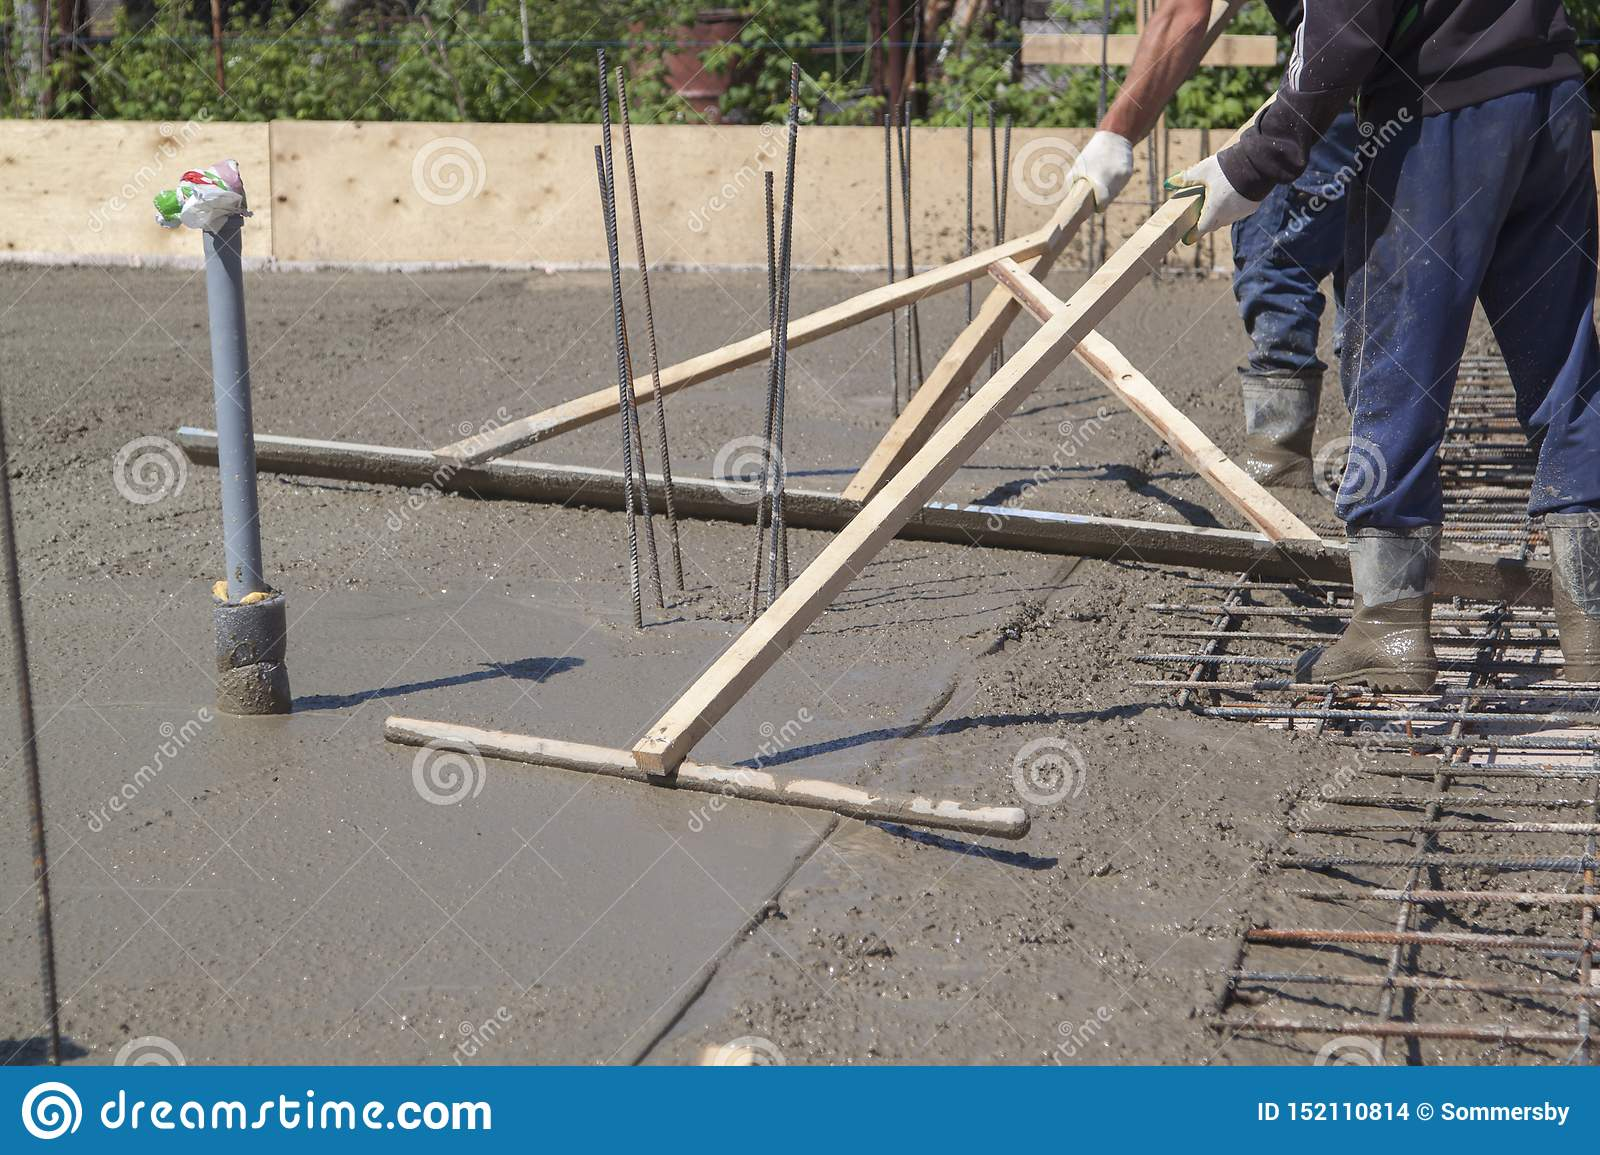 Workers Leveling Fresh Concrete Slab With A Special Working Tool Stock Photo Image Of Casting Industry 152110814